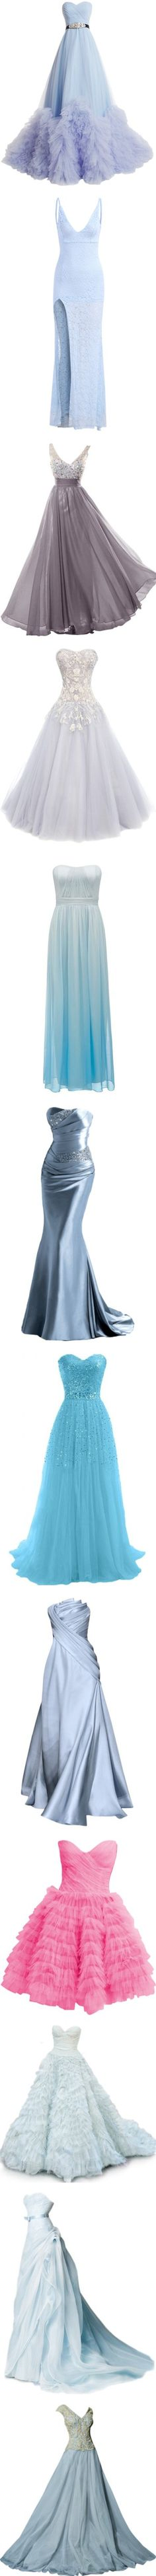 Cinderella's Dresses by disneydressing on Polyvore featuring women's fashion, dresses, wedding dresses, gowns, long dresses, vestidos, blue, long blue dress, lace maxi dress and long sleeve dress